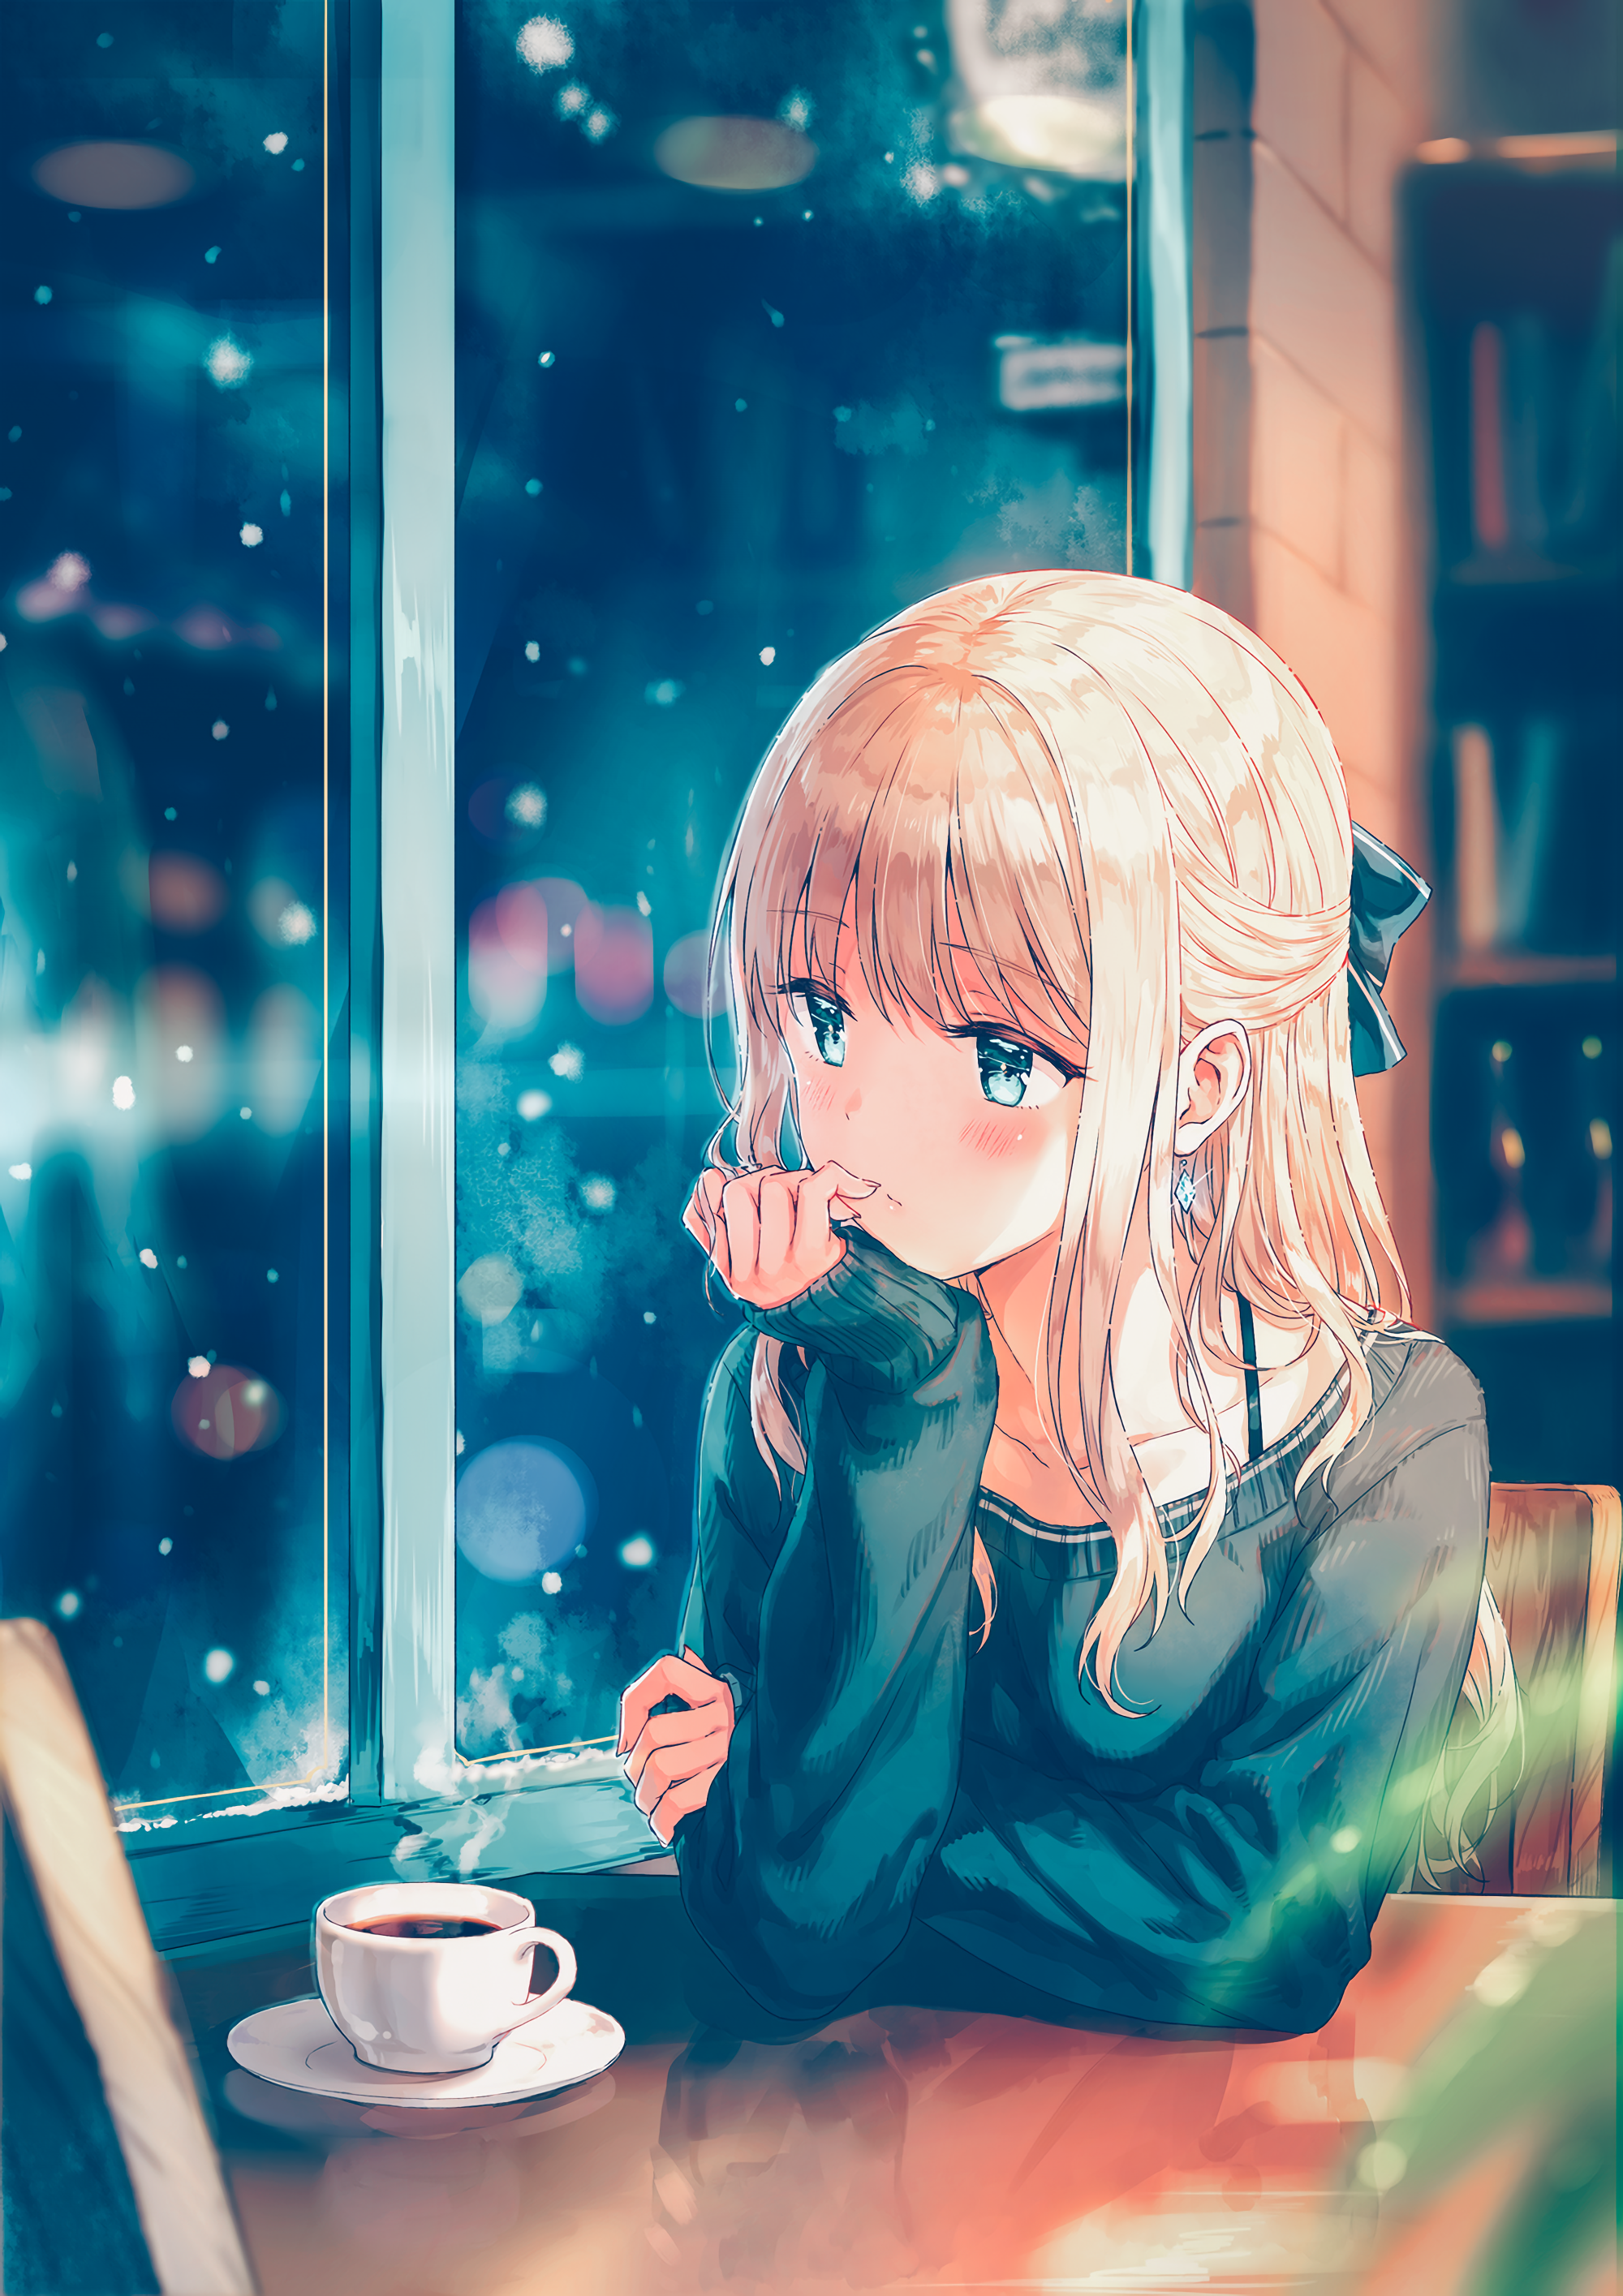 Anime 2000x2830 anime anime girls long hair blonde sweater snow aqua